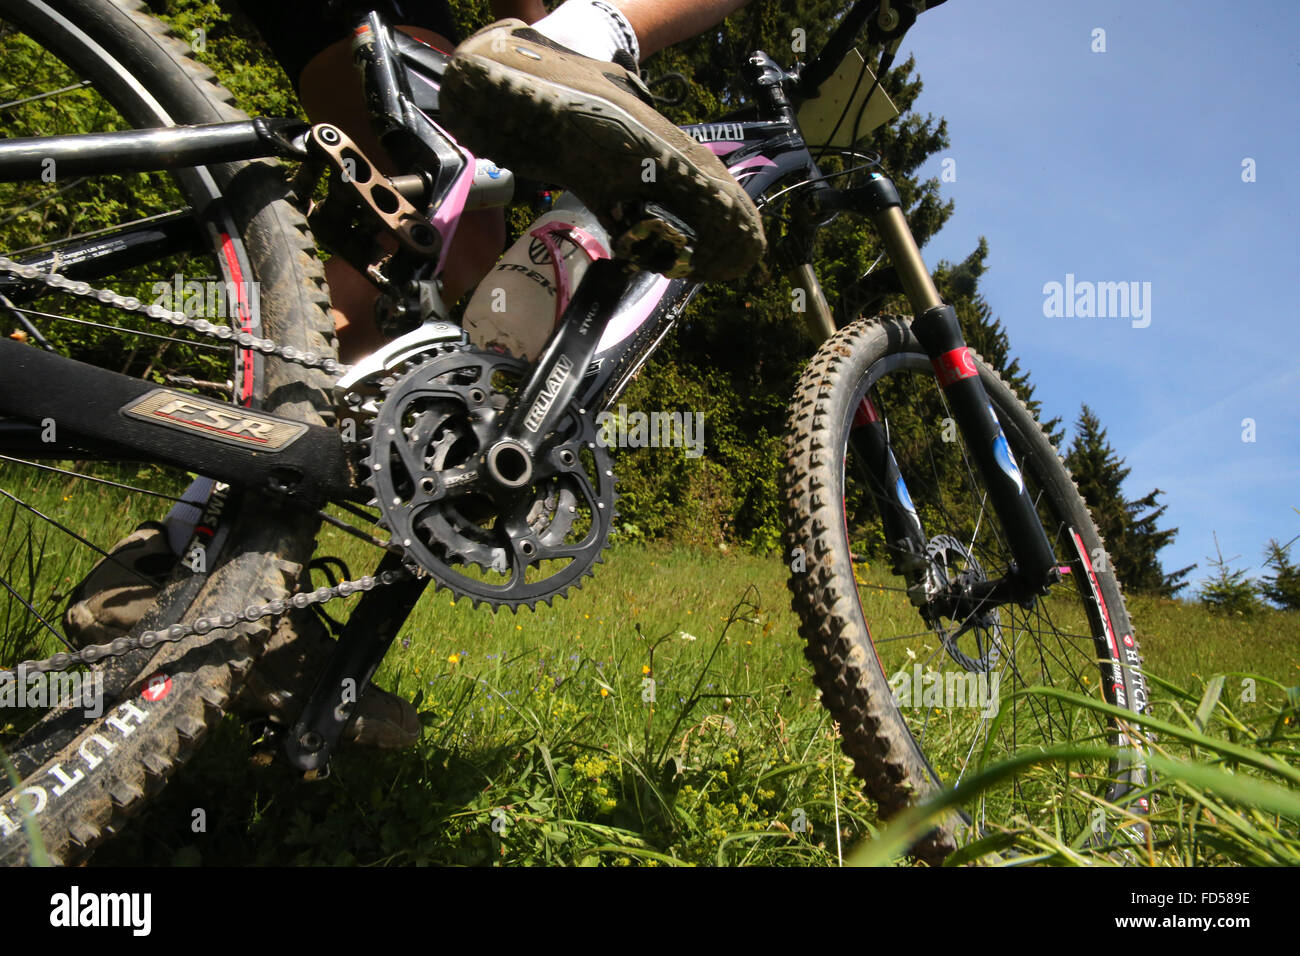 Dre Dans le l'Darbon : mountain bike race in the french Alps. - Stock Image